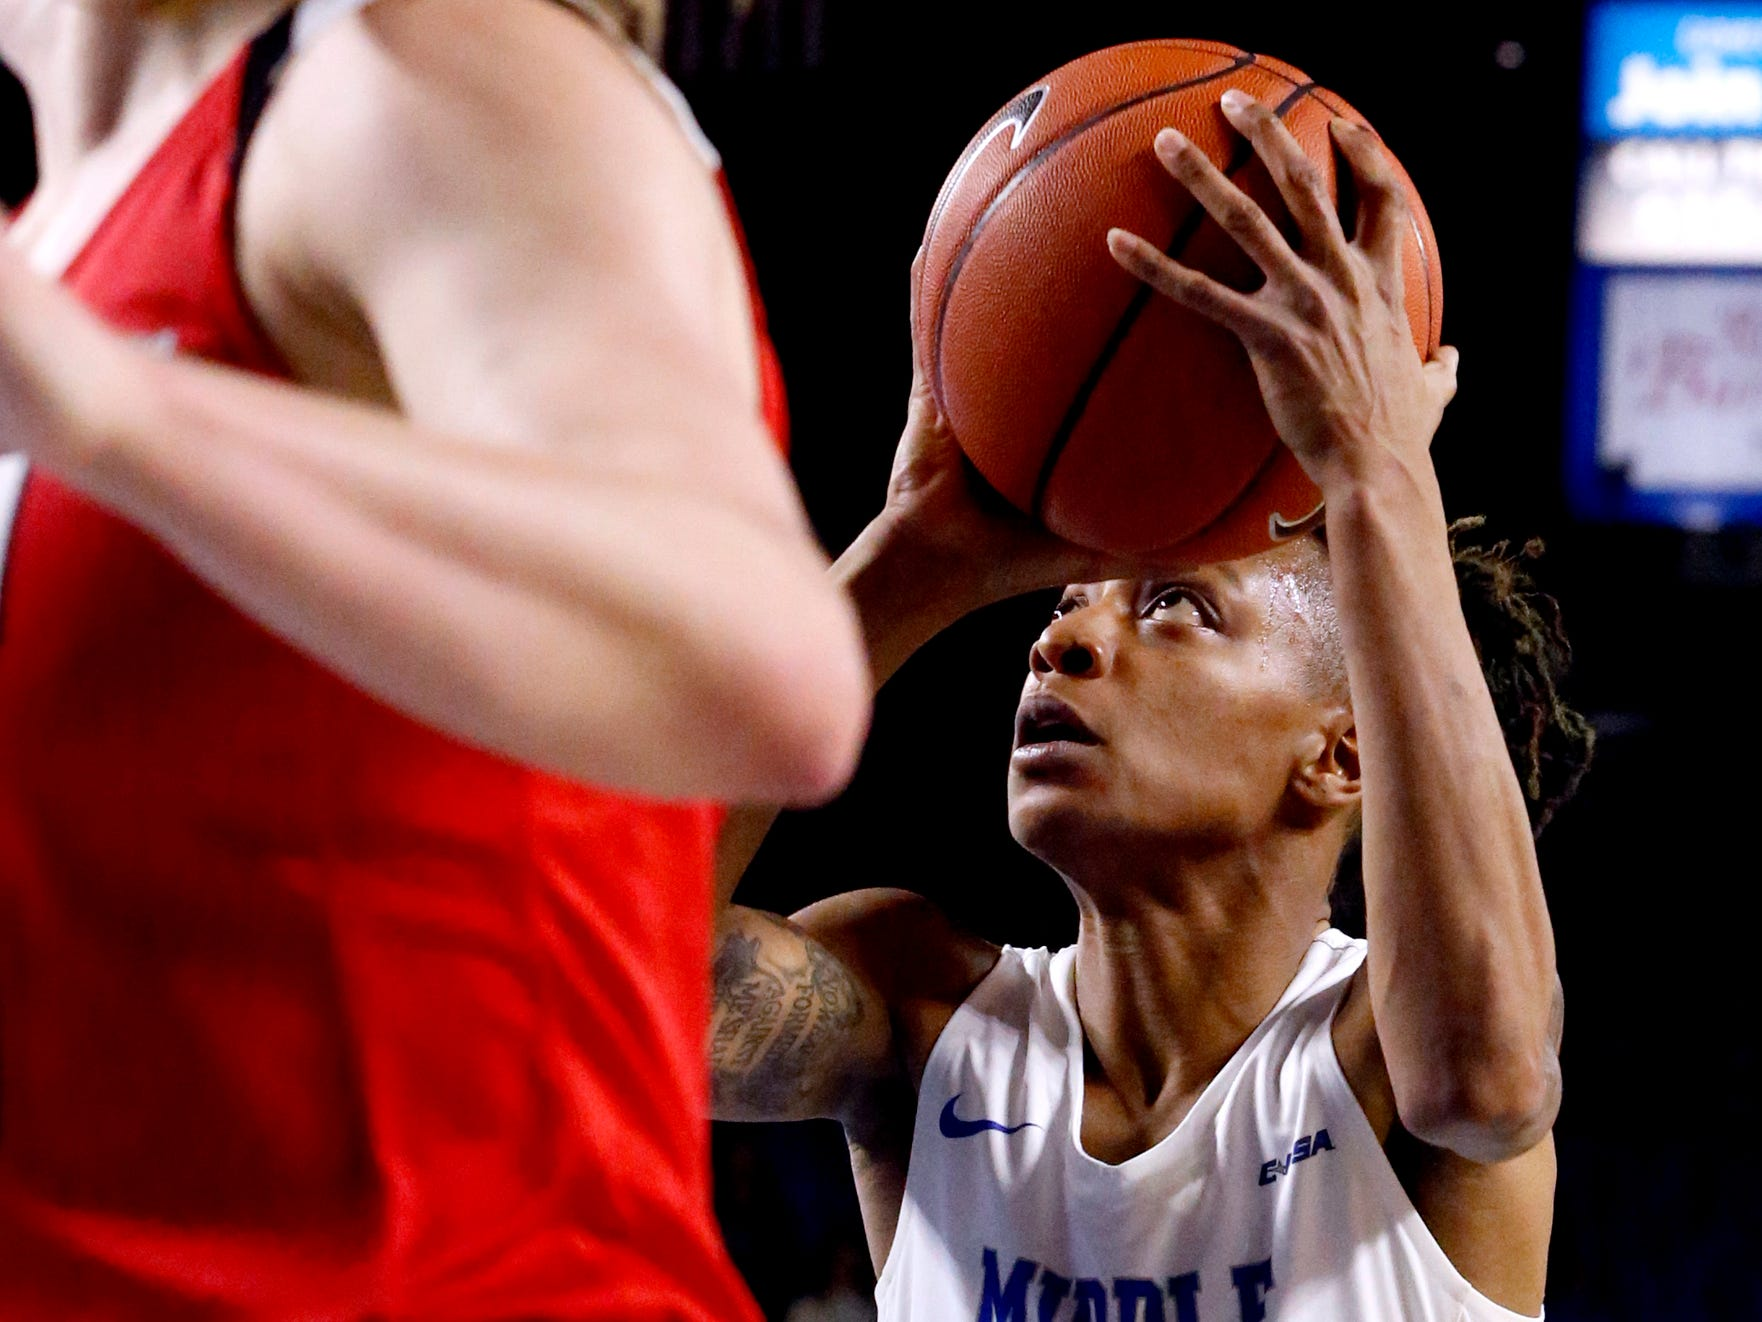 MTSU's guard A'Queen Hayes (1) goes up for a shot during the game against Western on Thursday, Feb. 14, 2019.